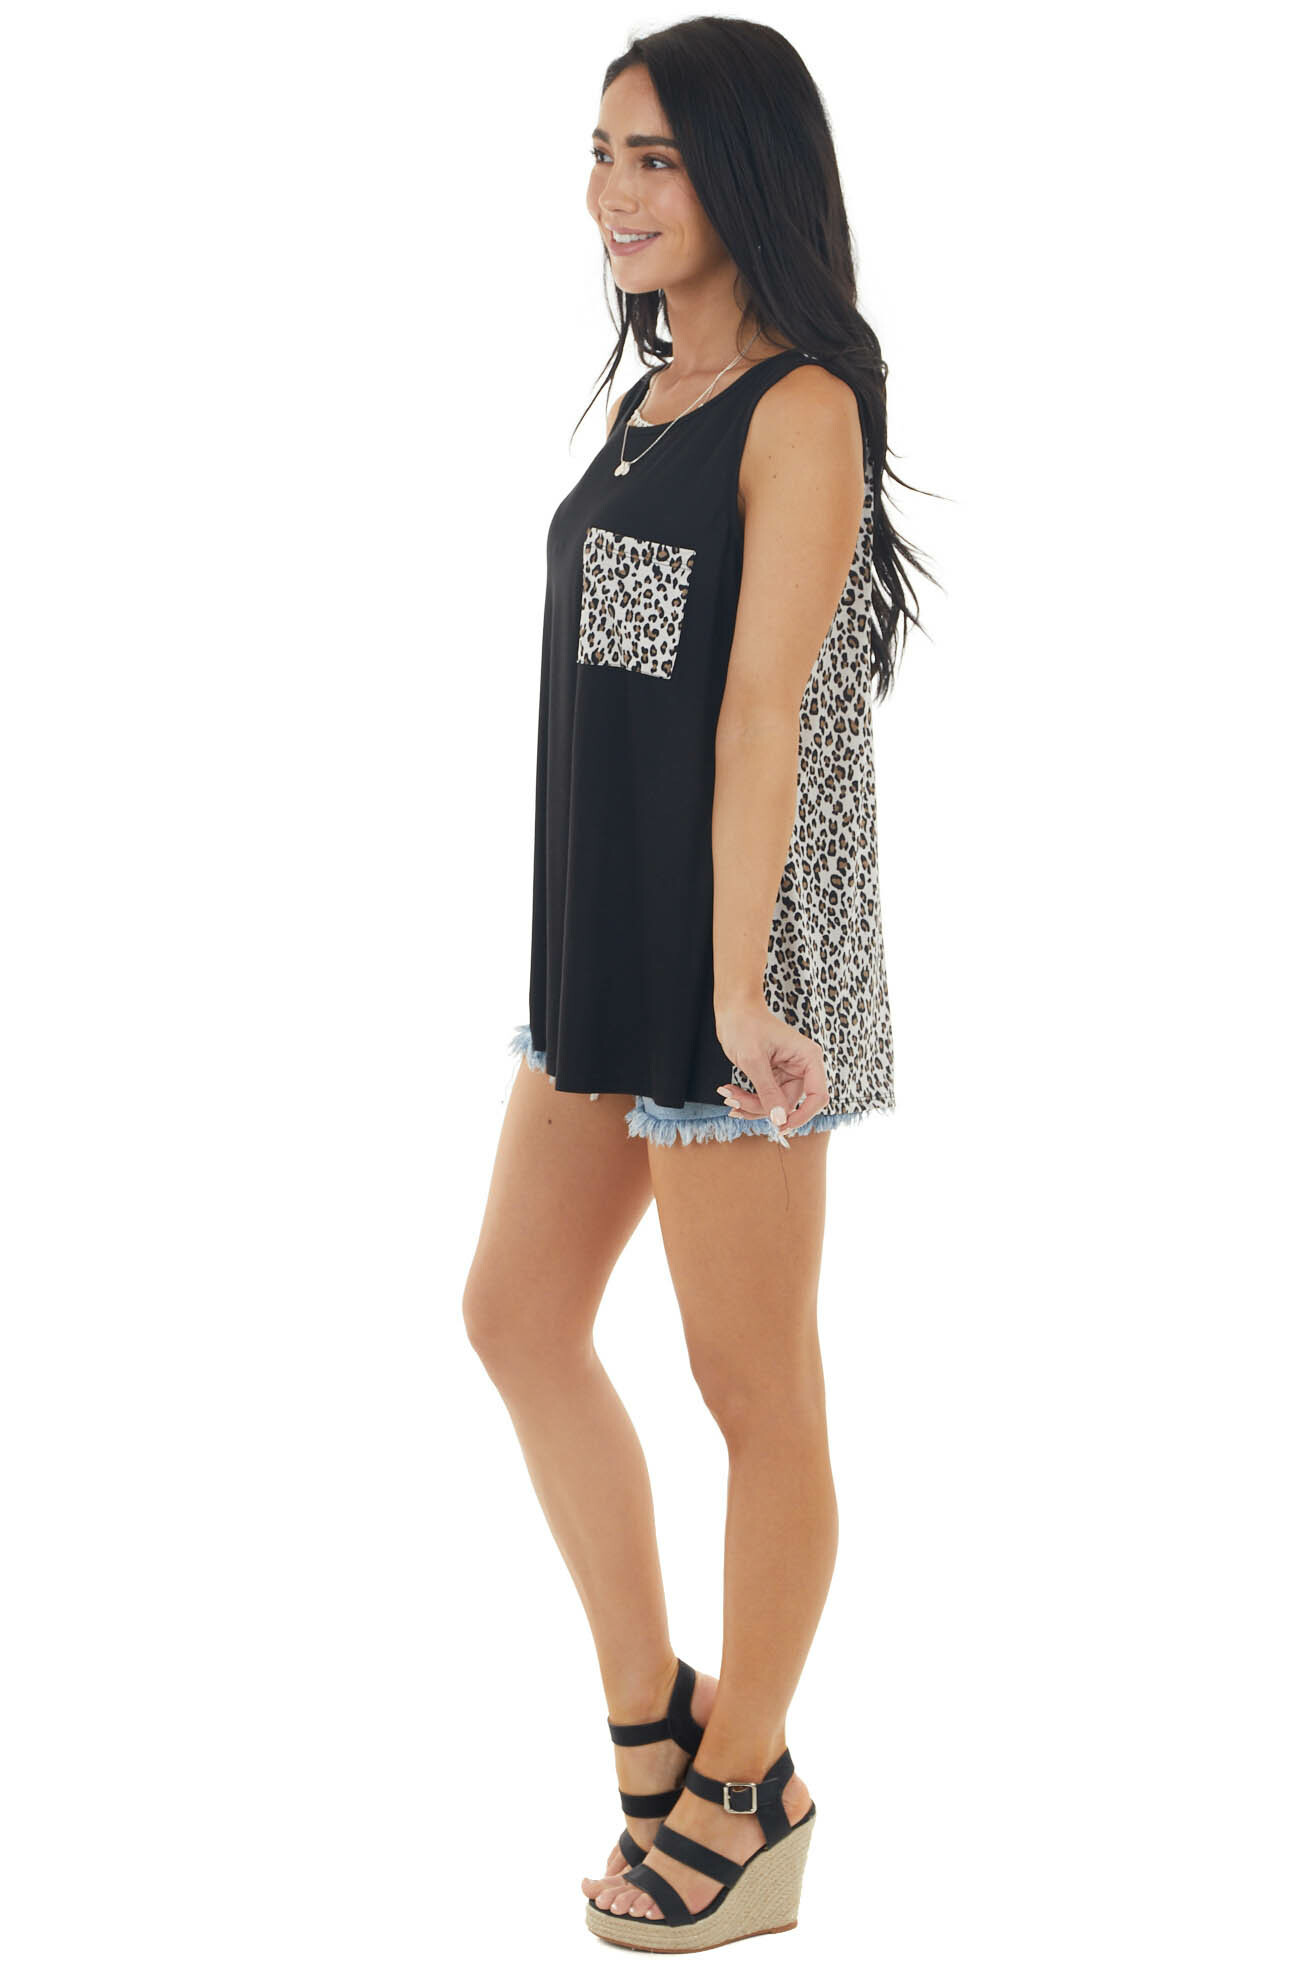 Black Sleeveless Knit Top with Leopard Print Pocket and Back